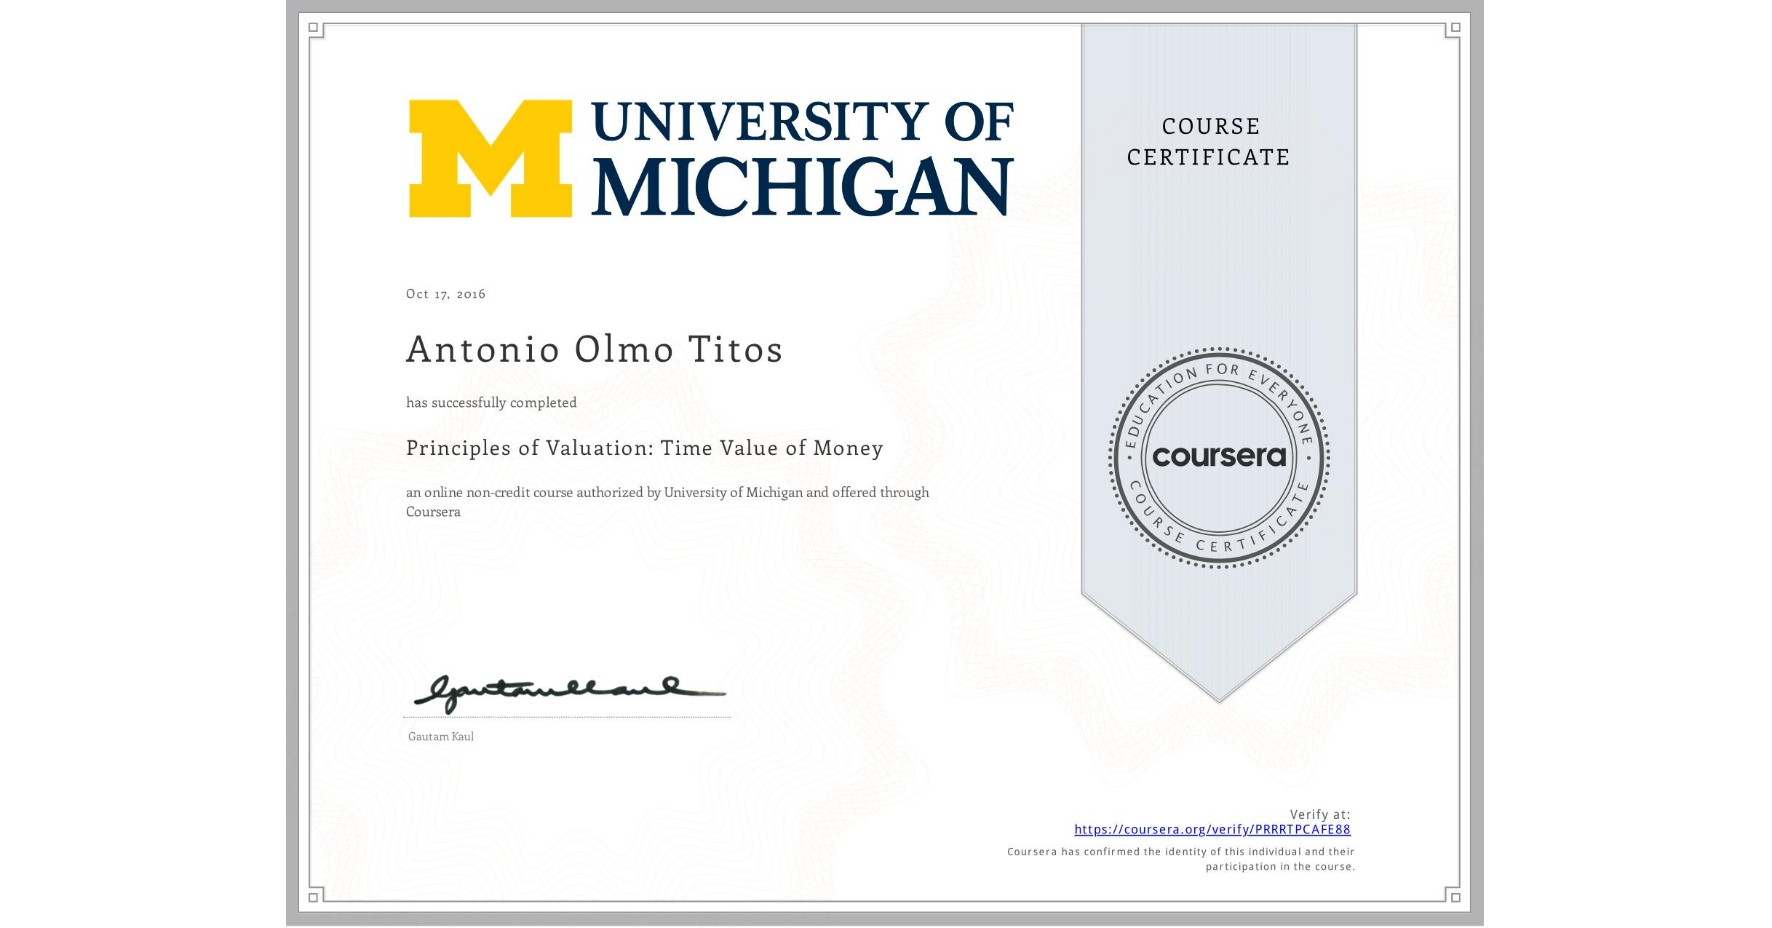 View certificate for Antonio Olmo Titos, Principles of Valuation: Time Value of Money, an online non-credit course authorized by University of Michigan and offered through Coursera